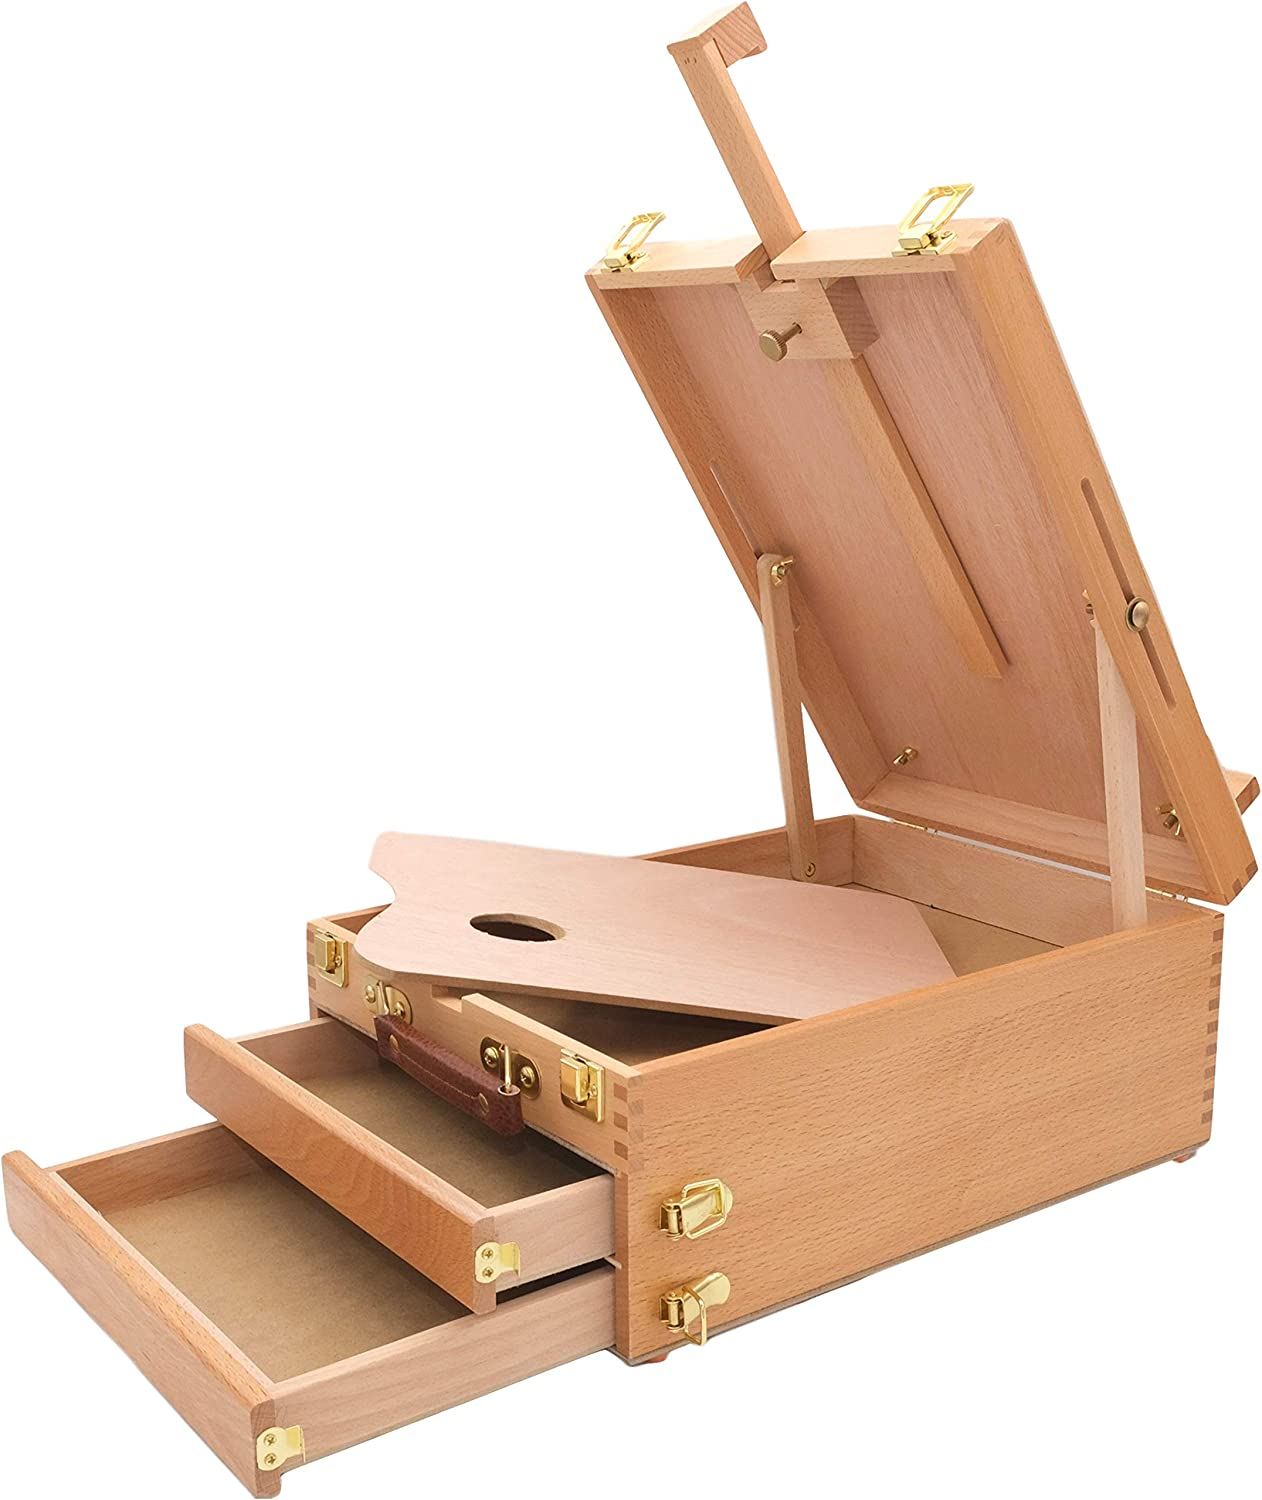 MEEDEN Artist Tabletop Sketchbox Easel -Multi-Function Adjustable Beech Wood Sketch Box with 2-Drawers and 1-Paint Palette for PleinAir Artist, Art Students and Beginners